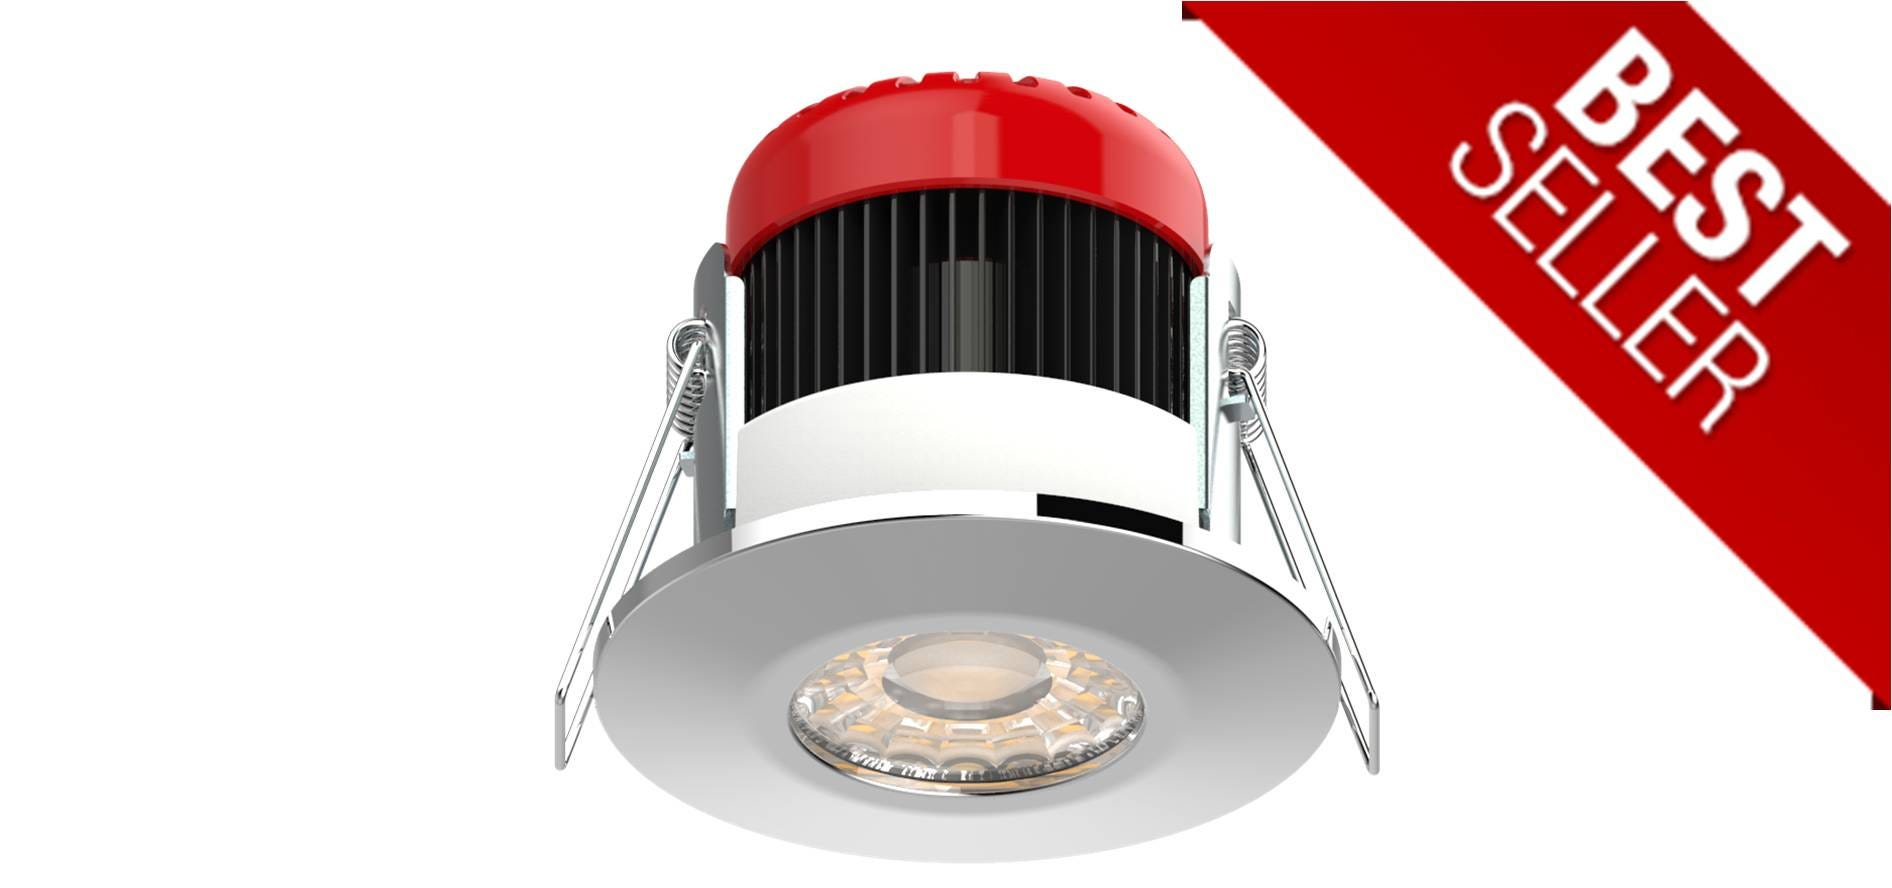 Britesource 10w All In One Downlight